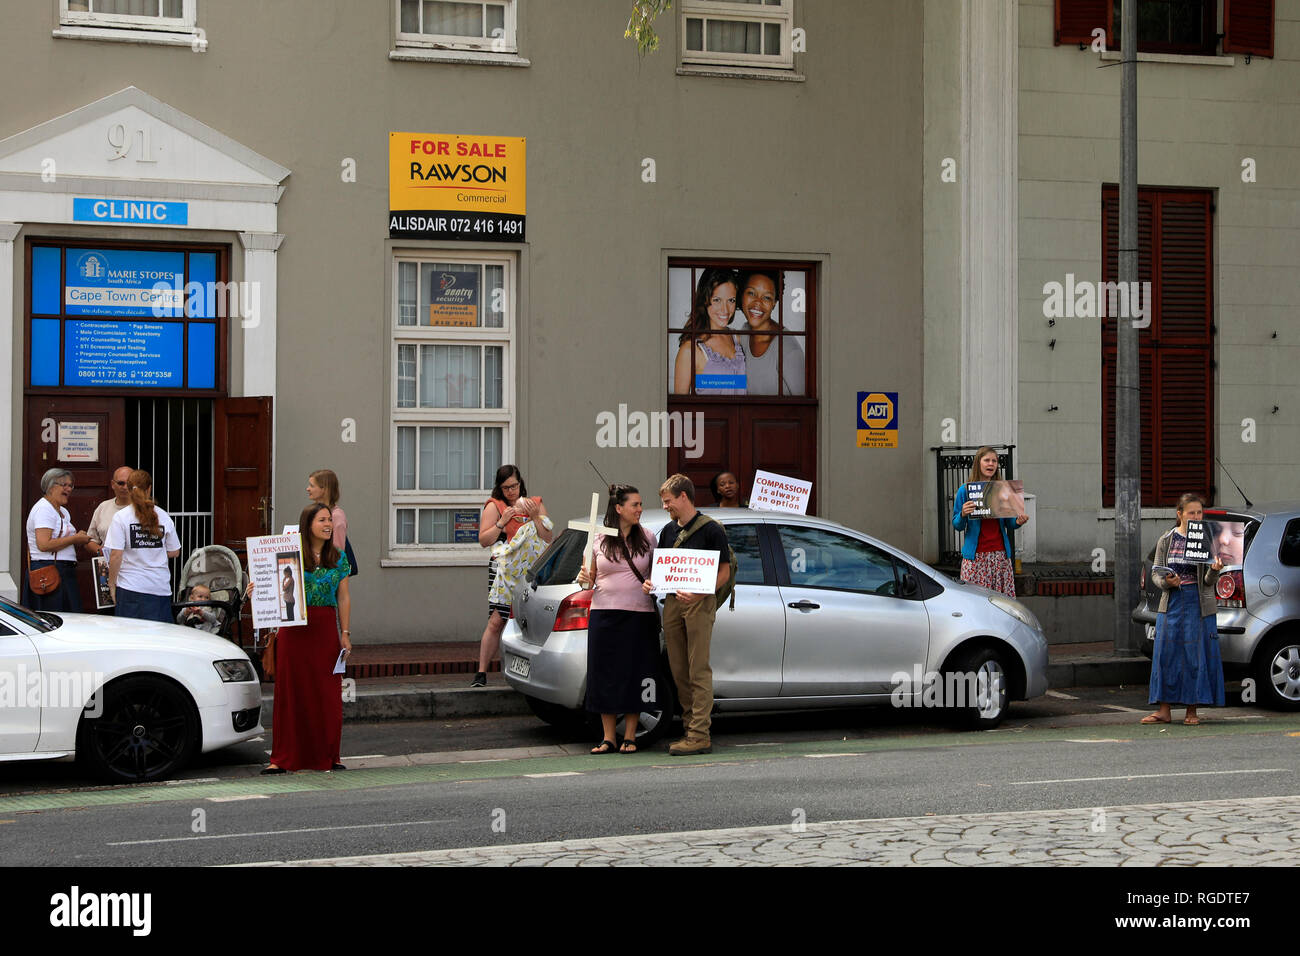 Anti-abortion protest in Bree Street, Cape Town, South Africa. - Stock Image